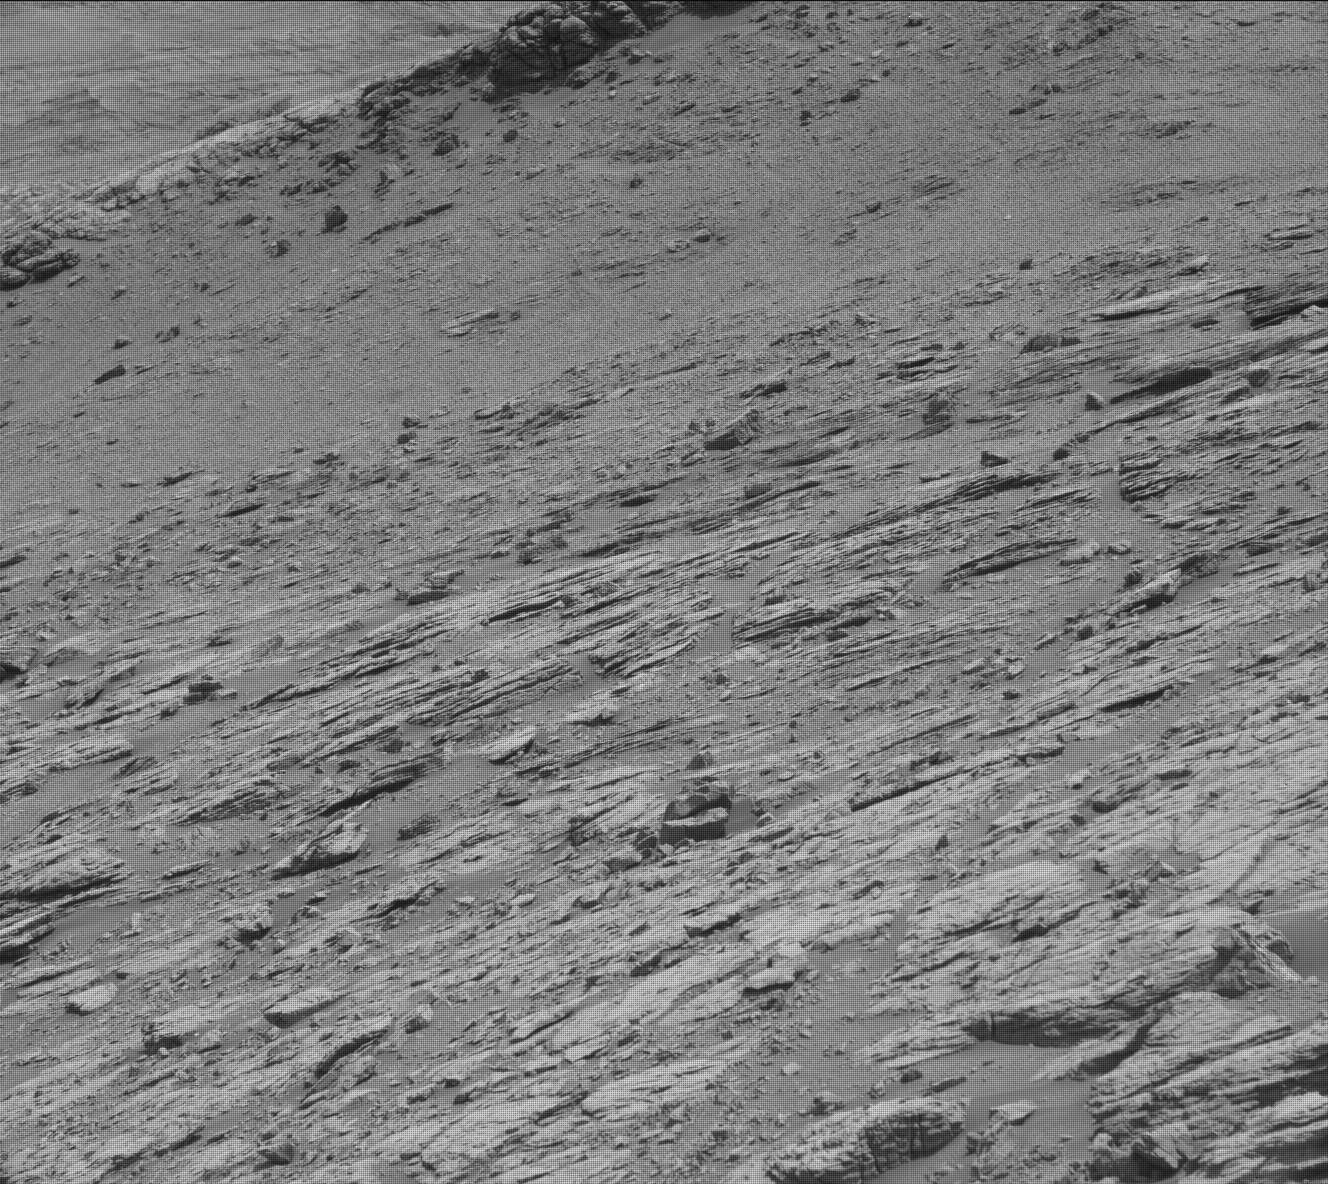 Nasa's Mars rover Curiosity acquired this image using its Mast Camera (Mastcam) on Sol 2950